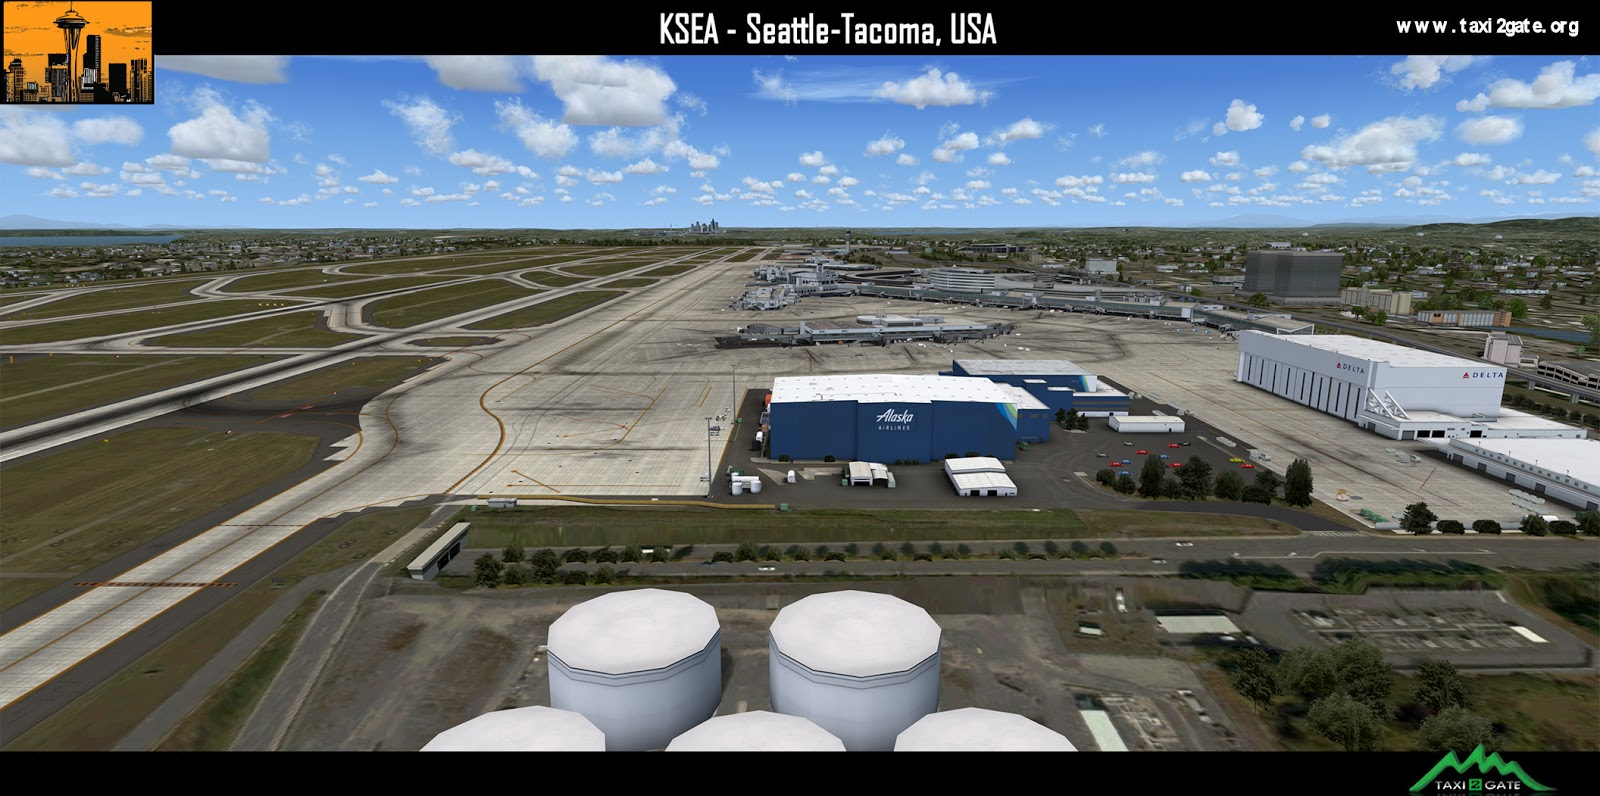 P3Dv4] Taxi2Gate - Seattle-Tacoma International Airport